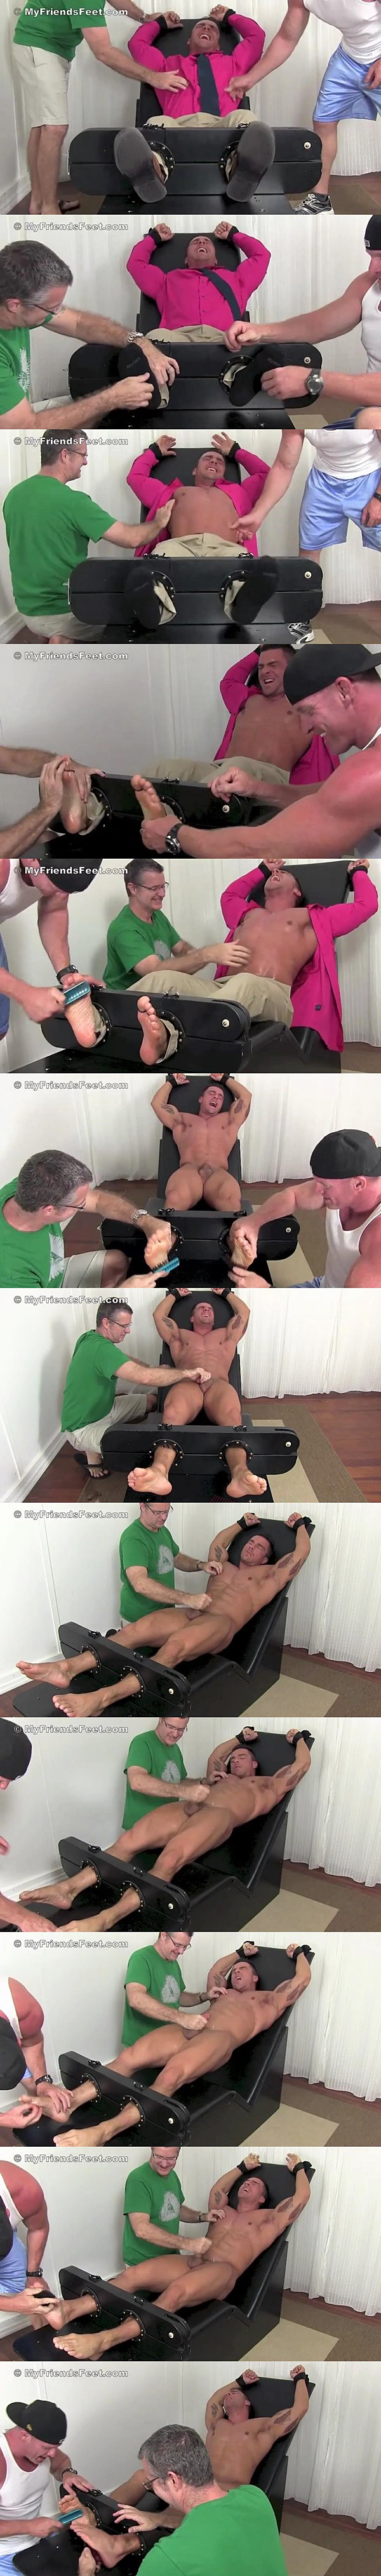 Macho straight muscle jock Braden Charron gets jerked-off & tickled at Myfriendsfeet 02